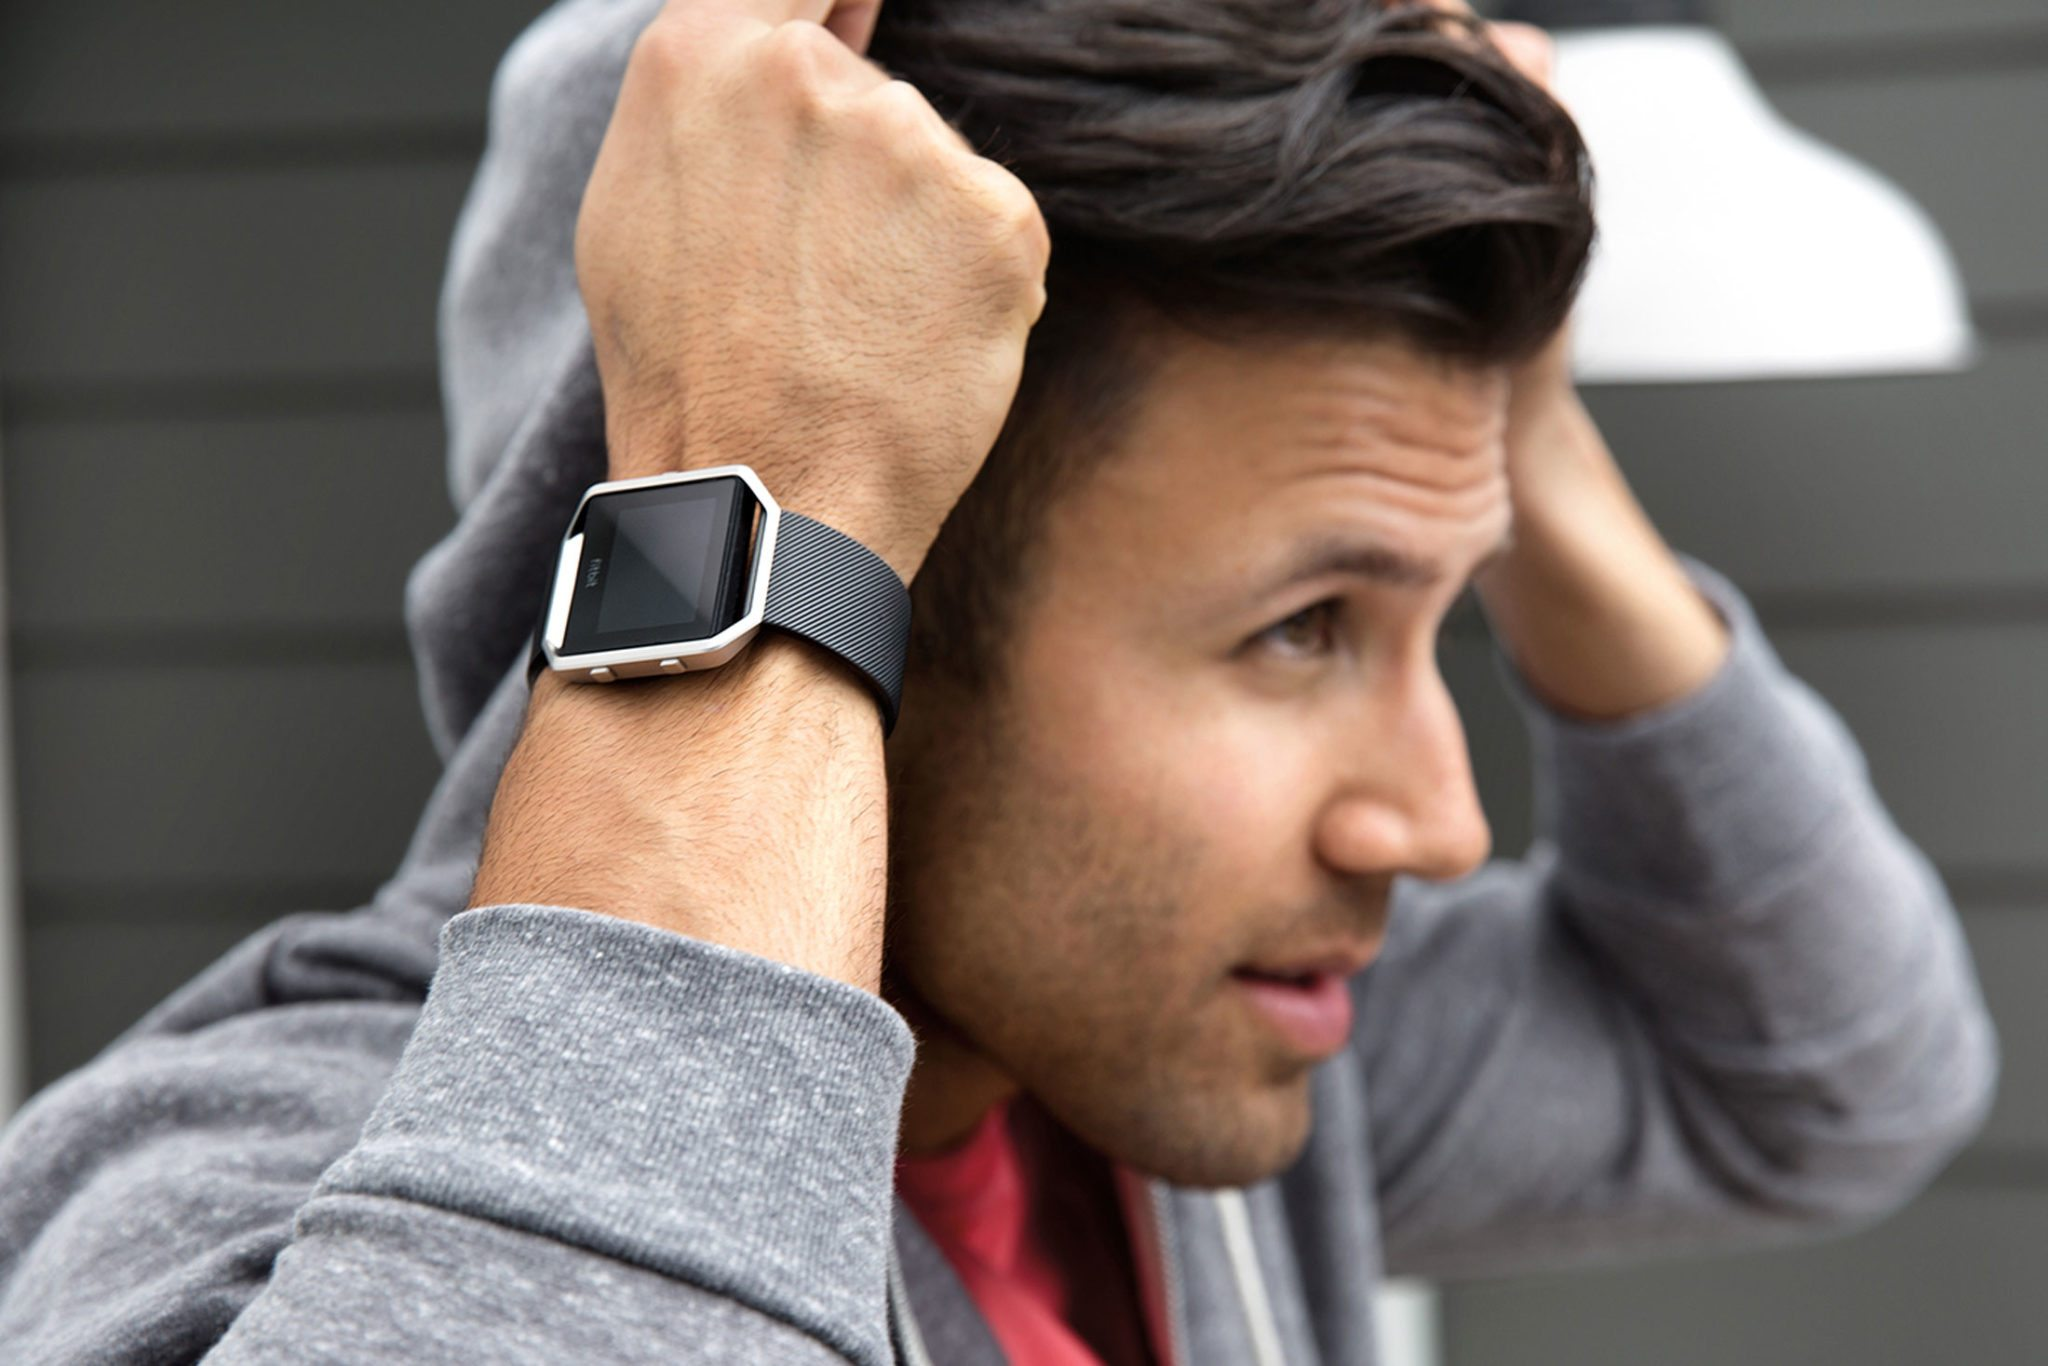 fitbit launches new wearable the fitbit blaze 3 - Fitbit launches new wearable - the Fitbit Blaze